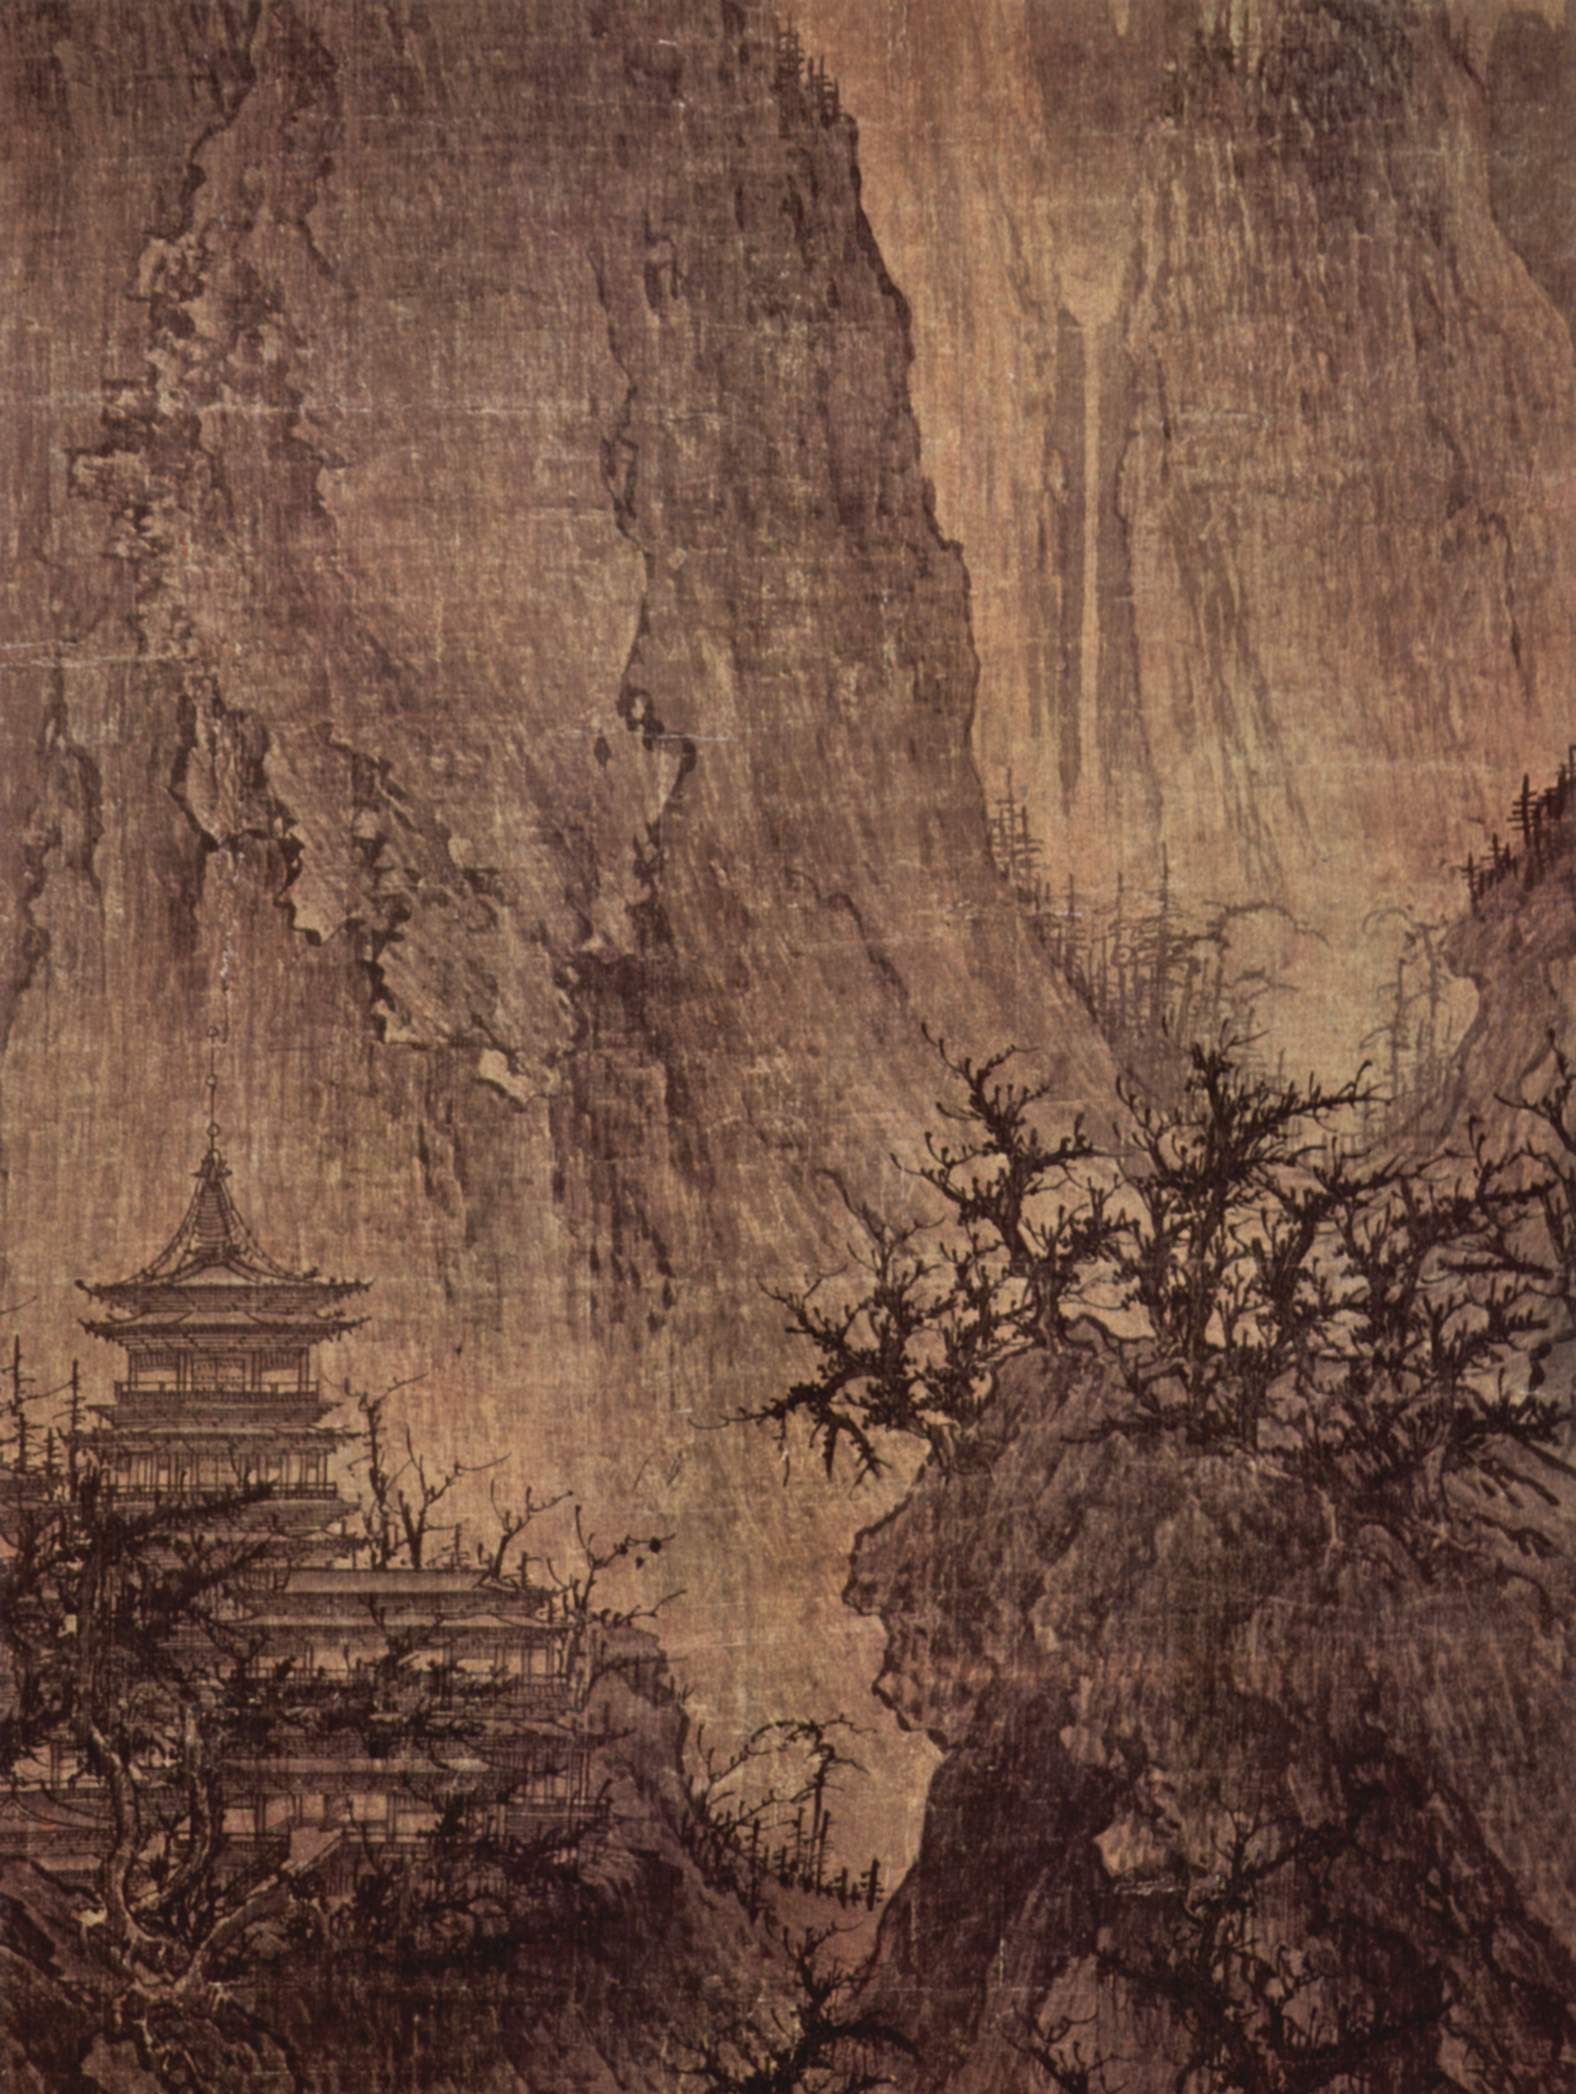 History of asian art wikiwand for Chinese mural art